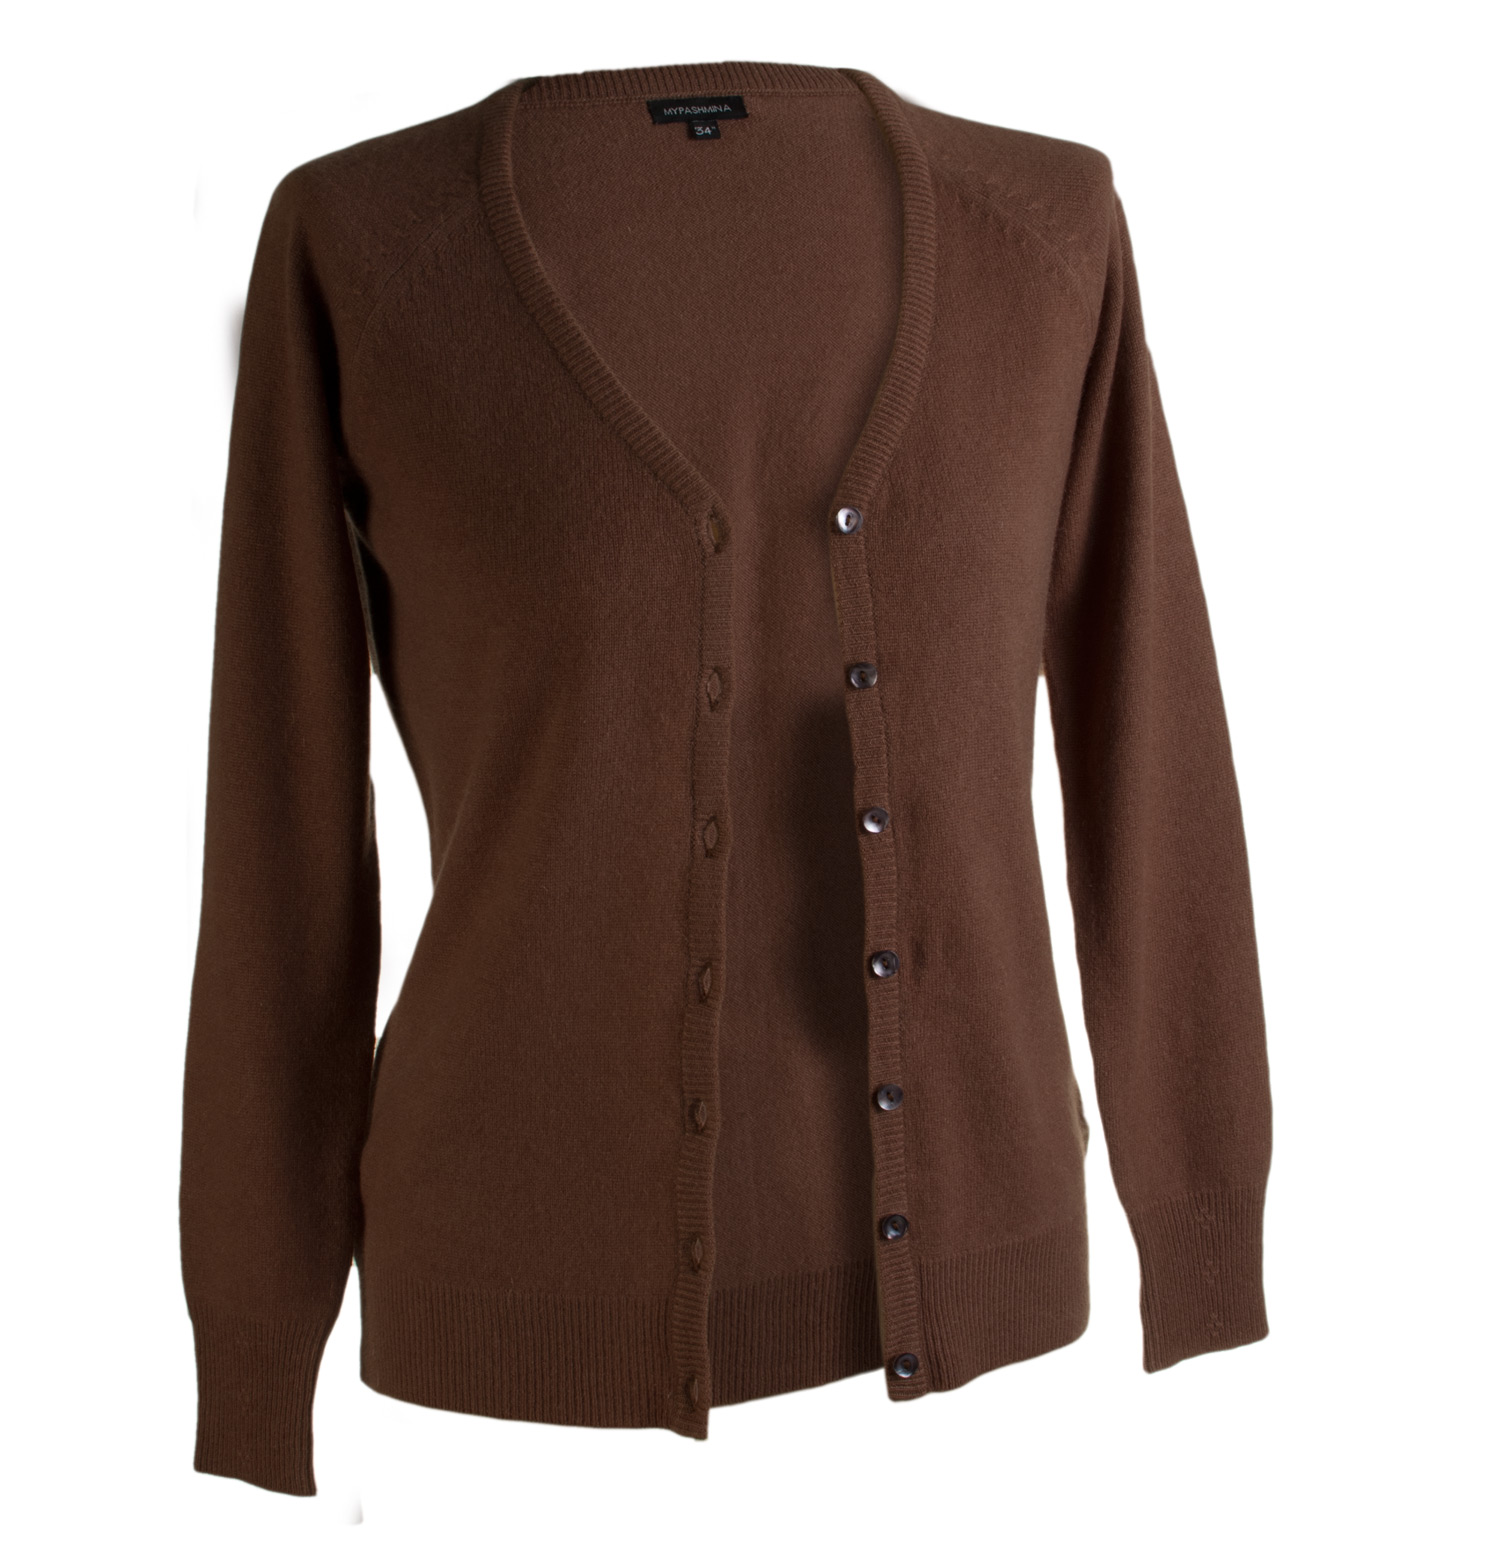 Ladies Cashmere Vneck Cardigan - Cocoa Brown